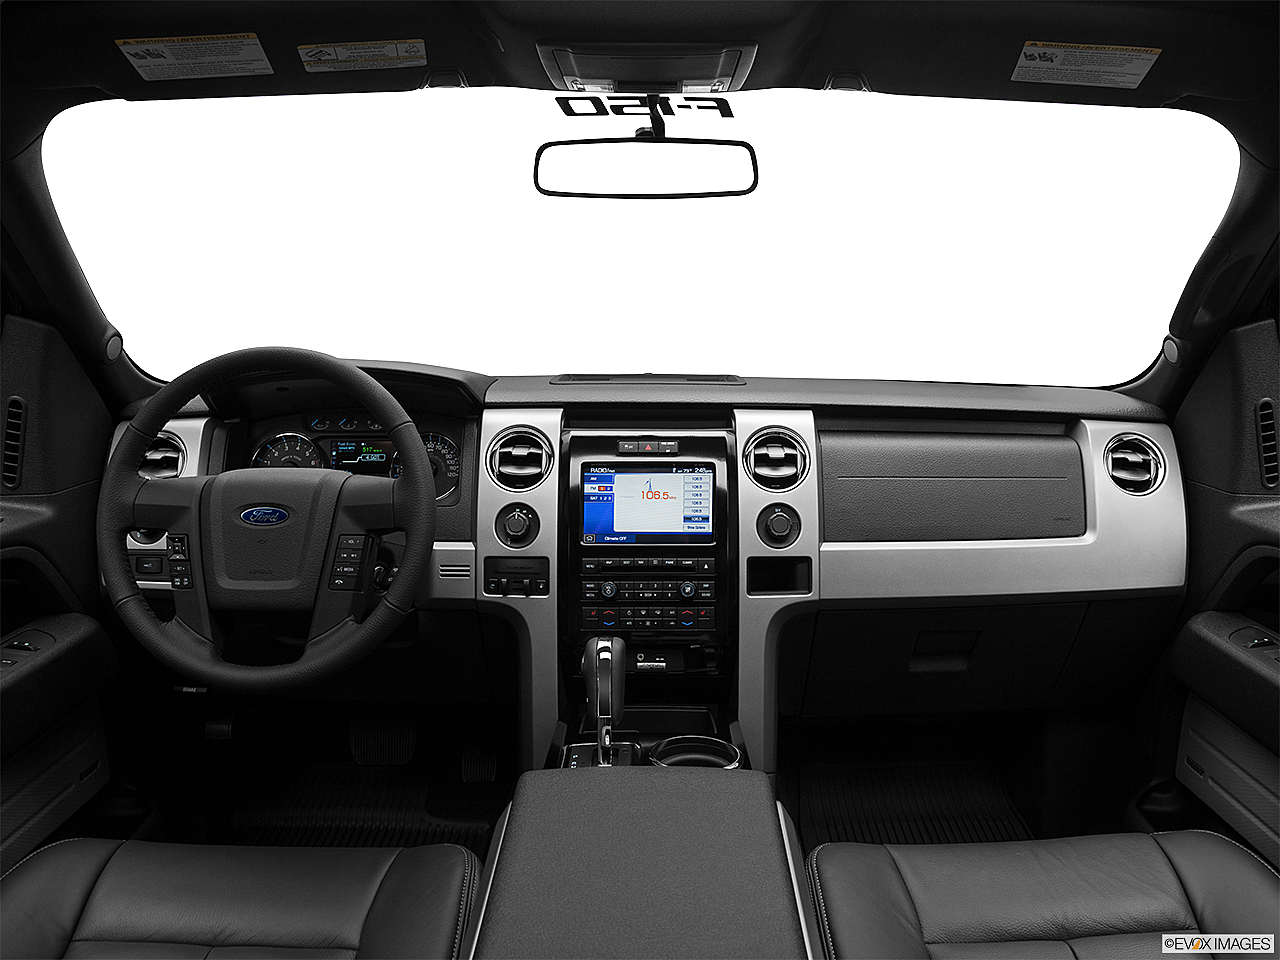 2011 Ford F-150 FX4, centered wide dash shot